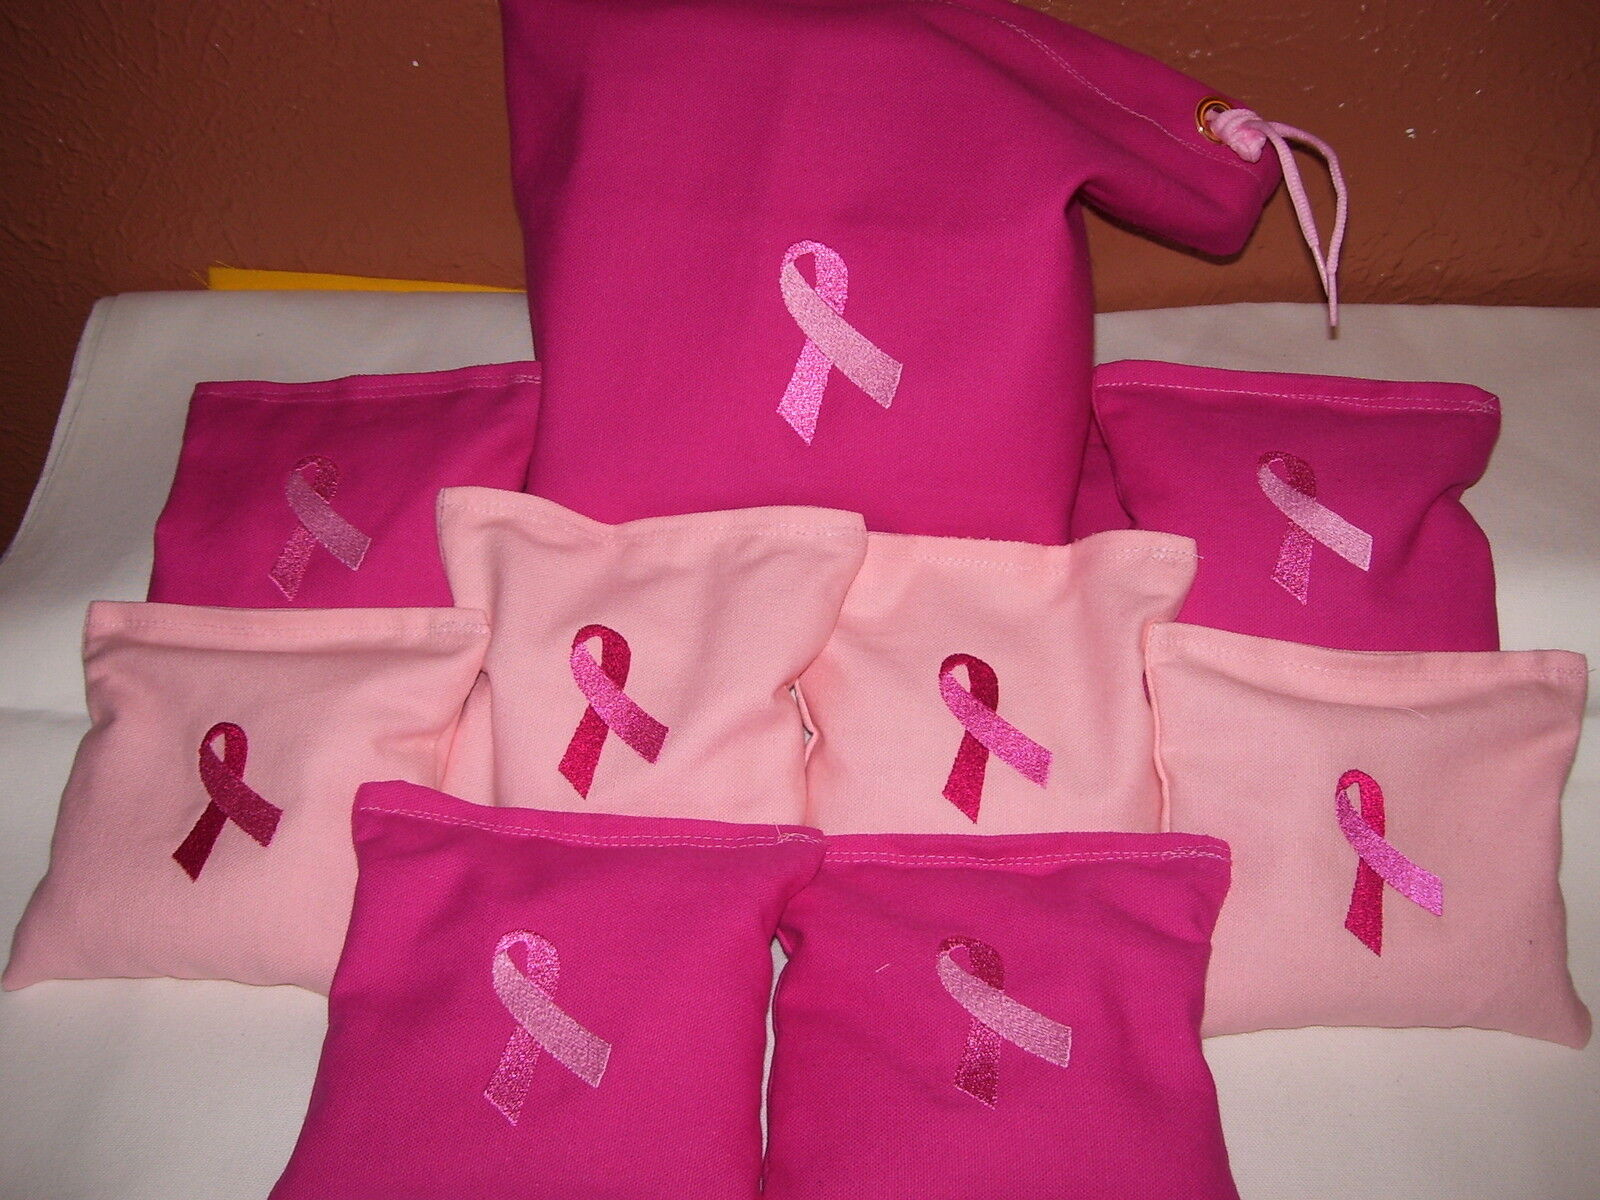 Breast  Cancer Embroidered Cornhole corn hole set of 8 Bags W Storage Bag  order online